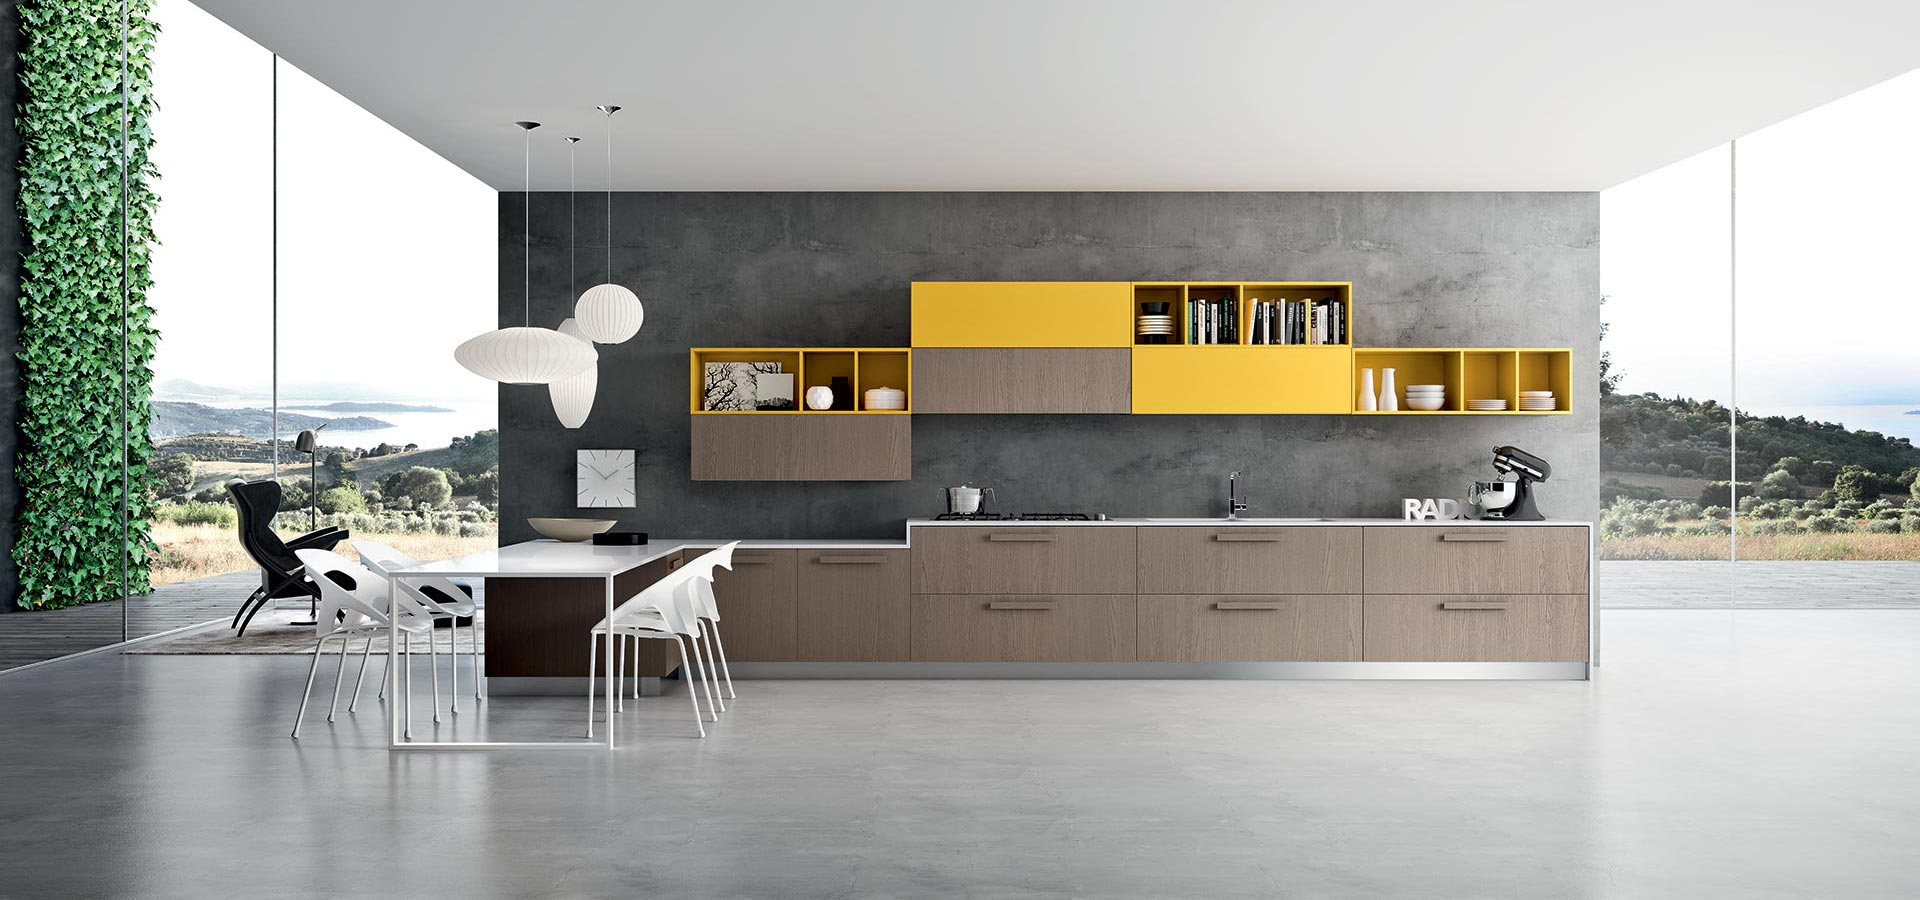 yellow as an accent colour should be sparingly used for maximum visual effect